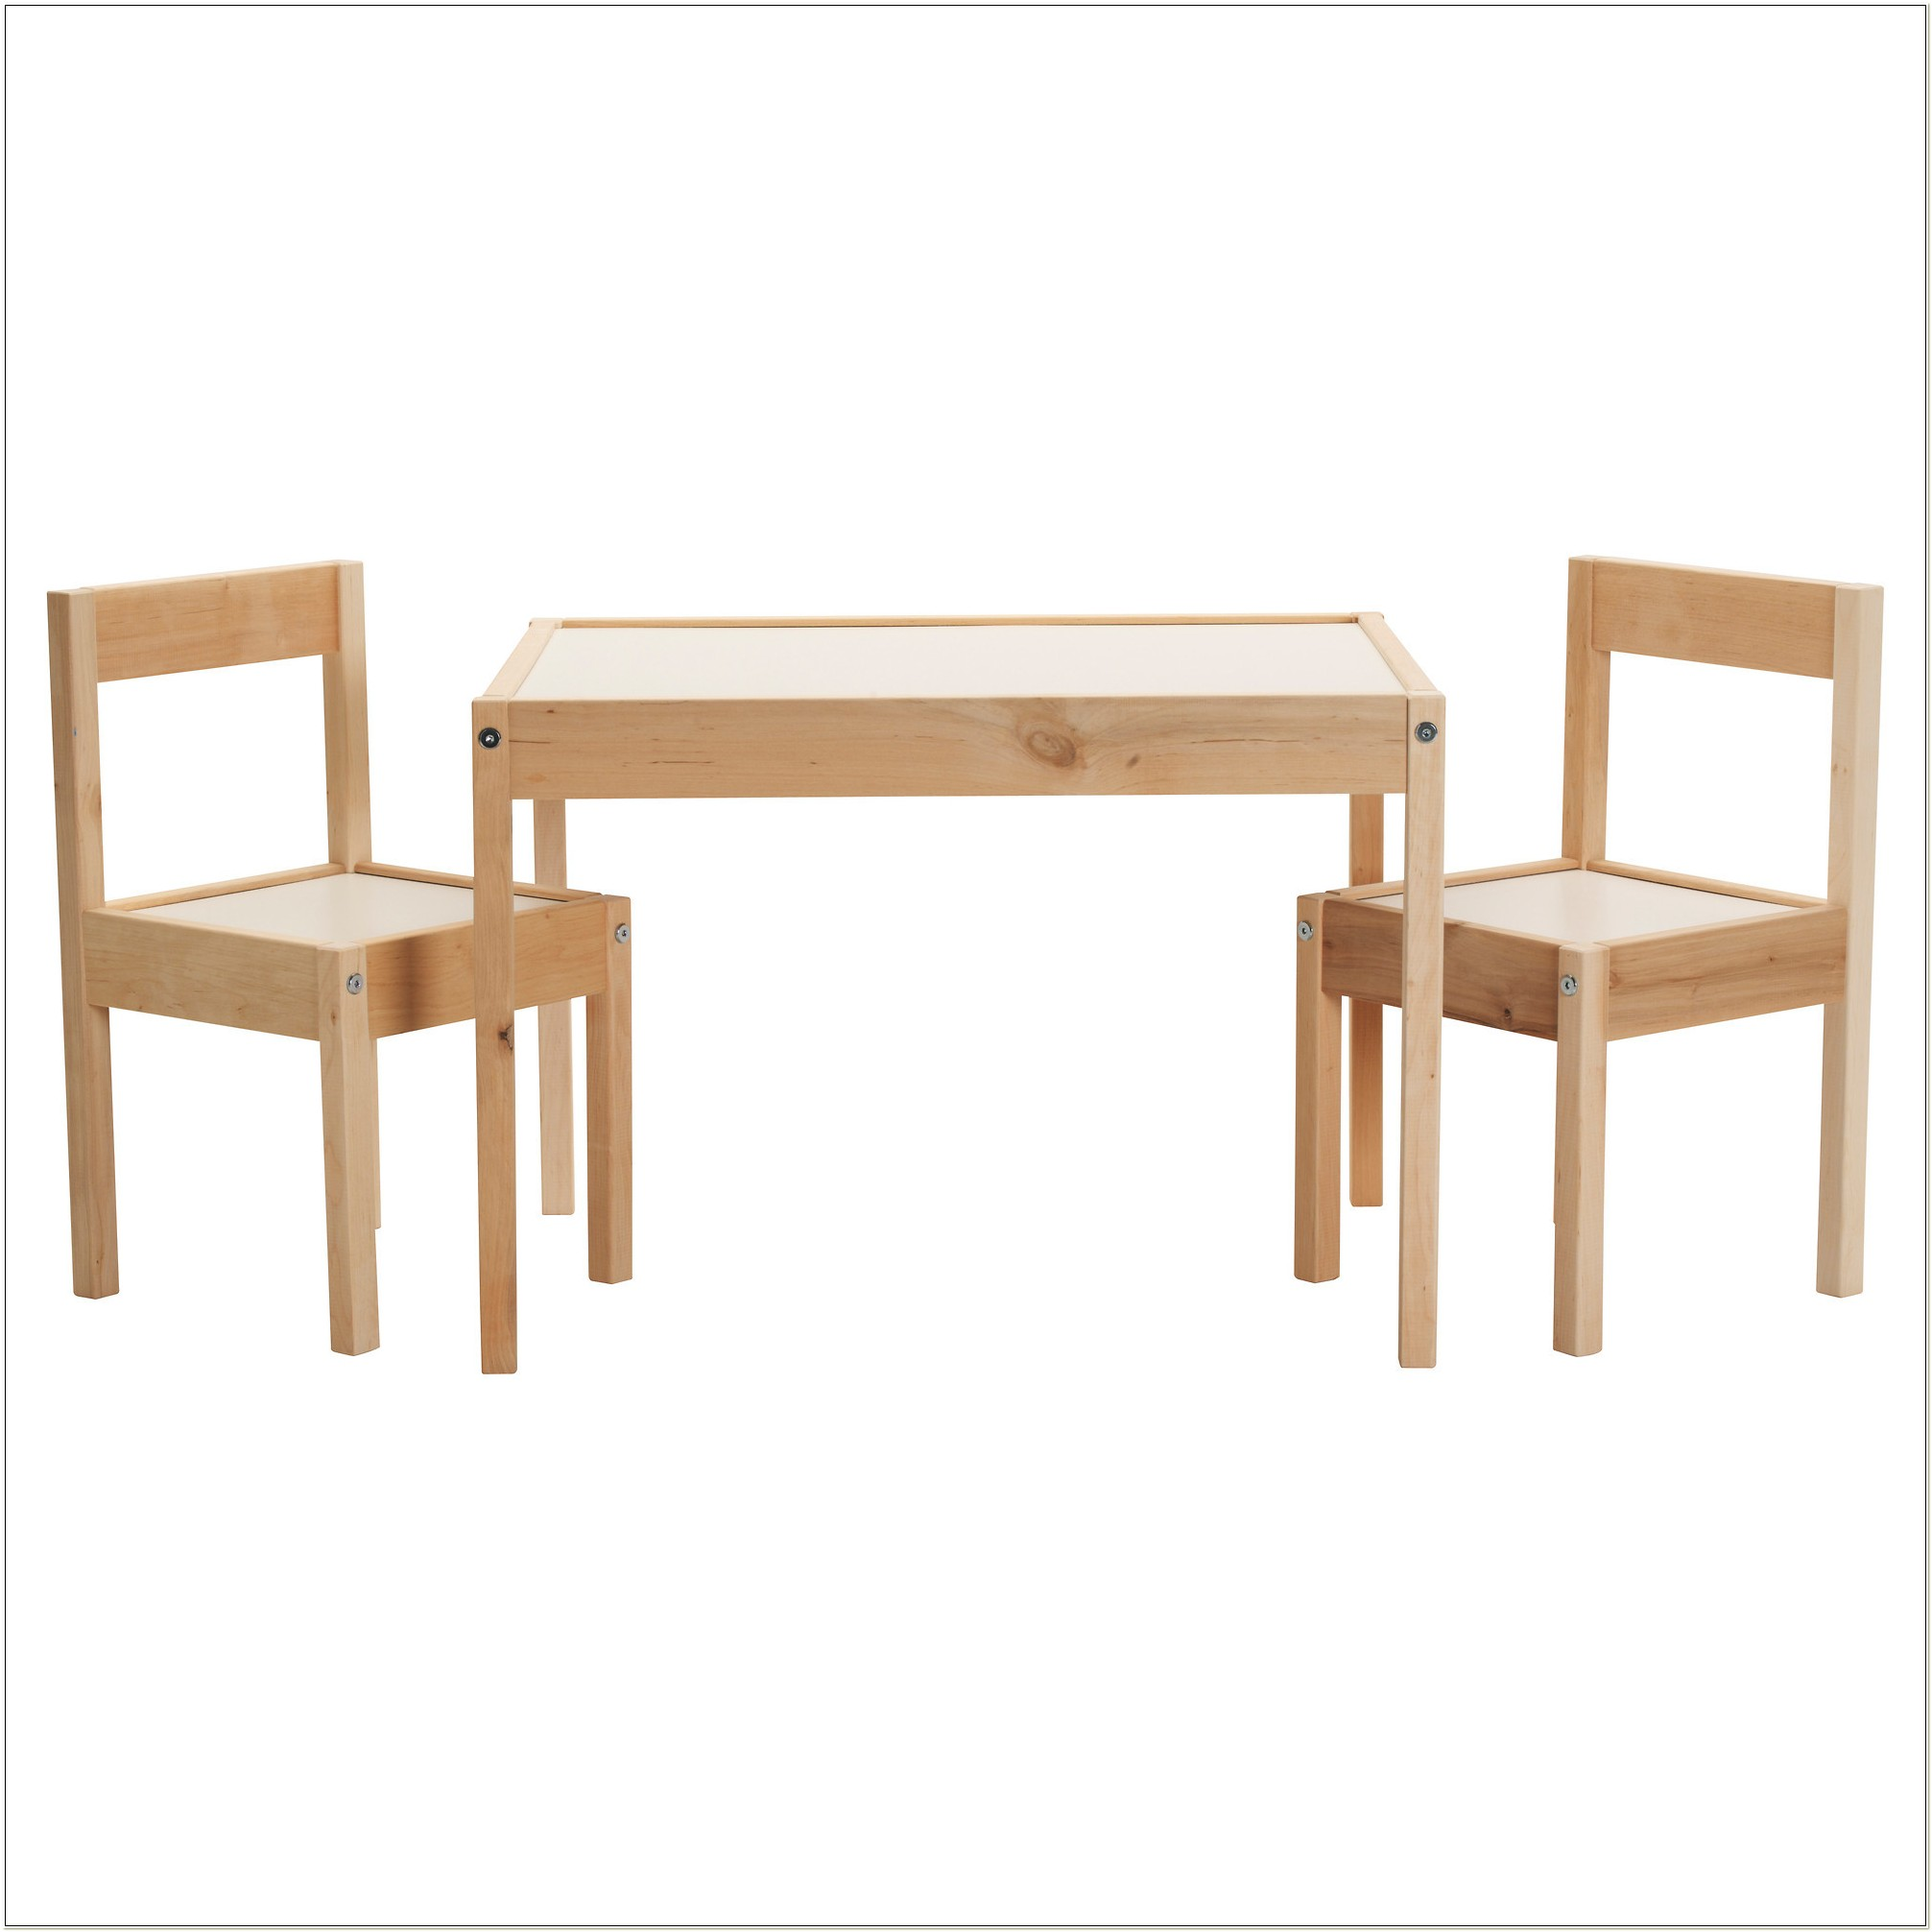 Ikea Childrens Table And Chairs Perth